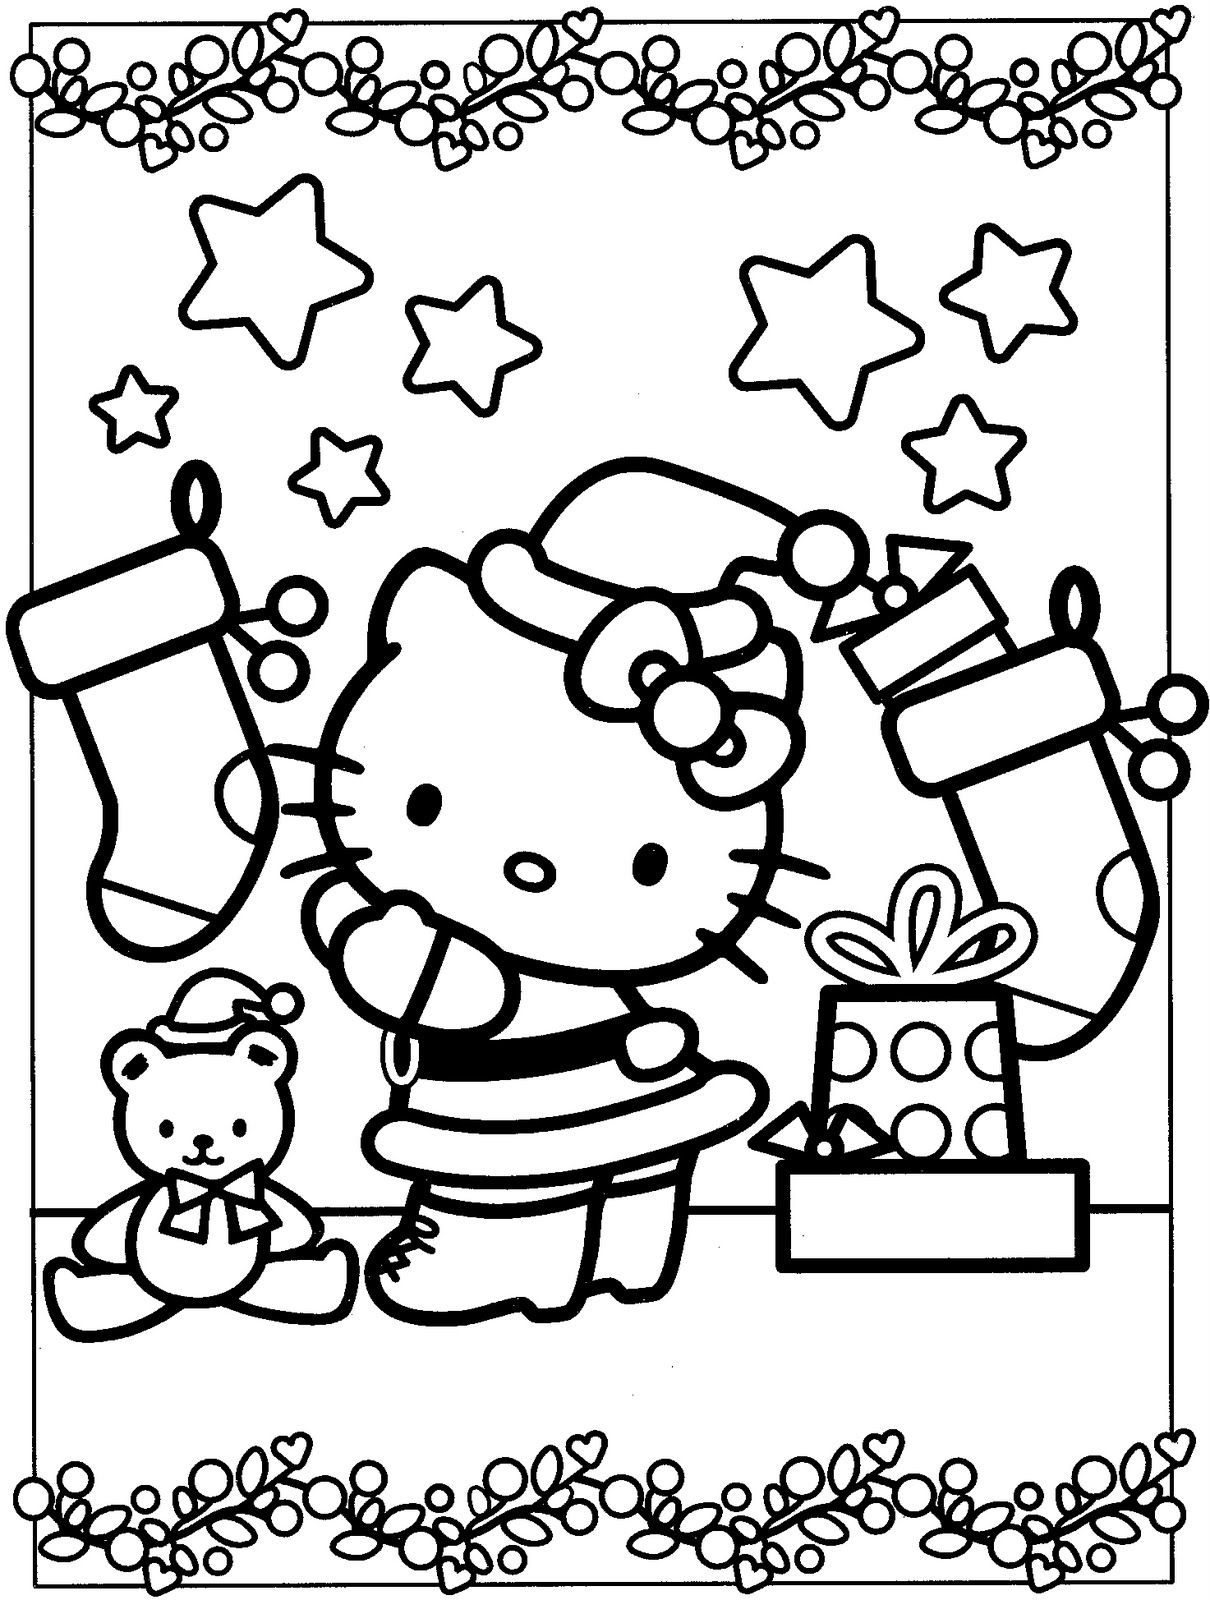 Christmas Kitty Coloring Pages With Chrismast Hello Http Smilecoloring Com